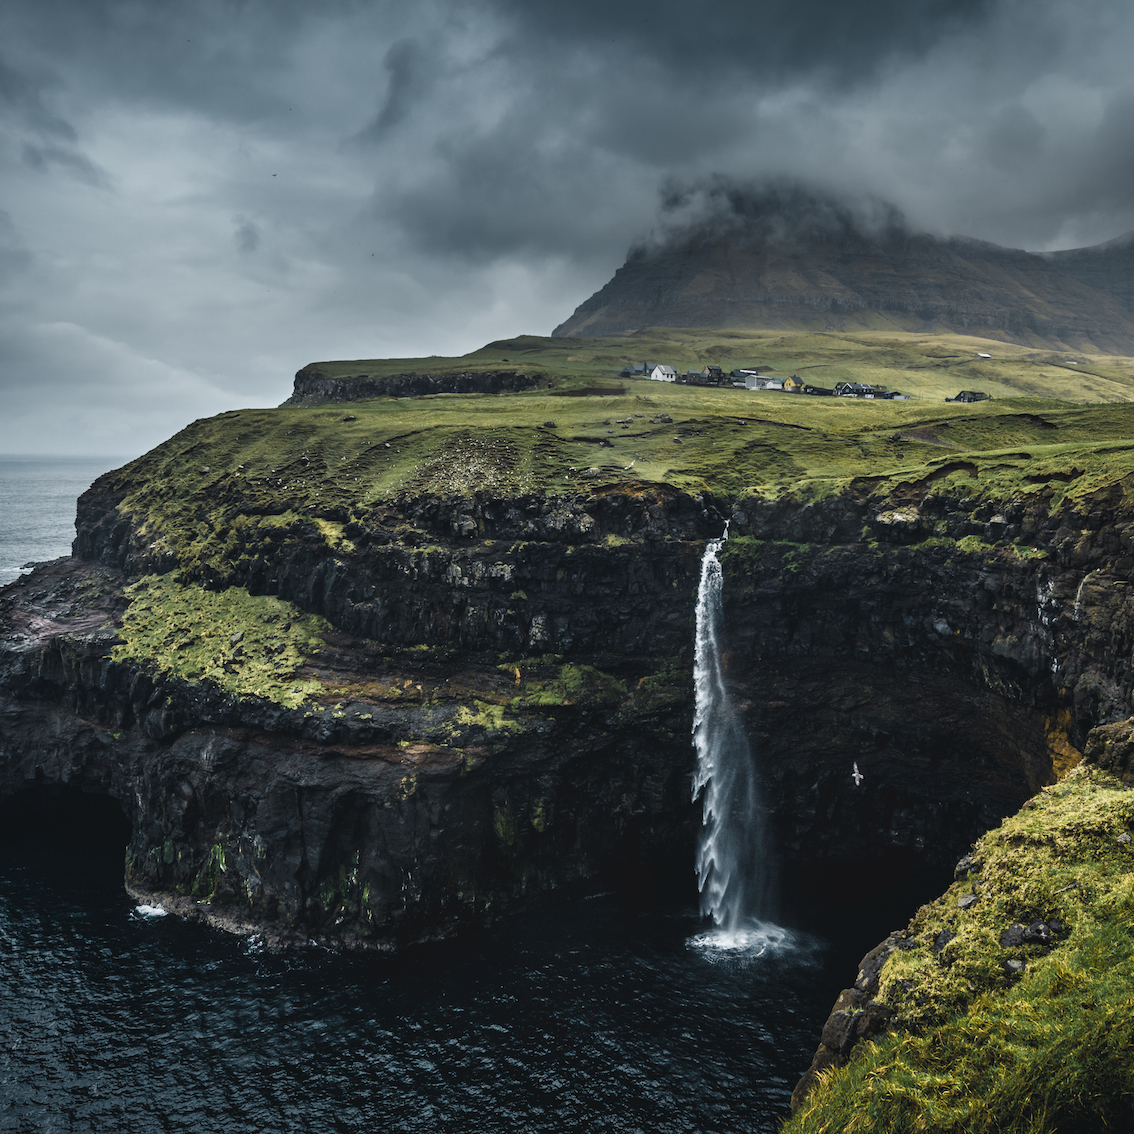 images/stories/faeroer/Faroe04_PhVisitFaroeIslands_PhilippFrerich.jpg